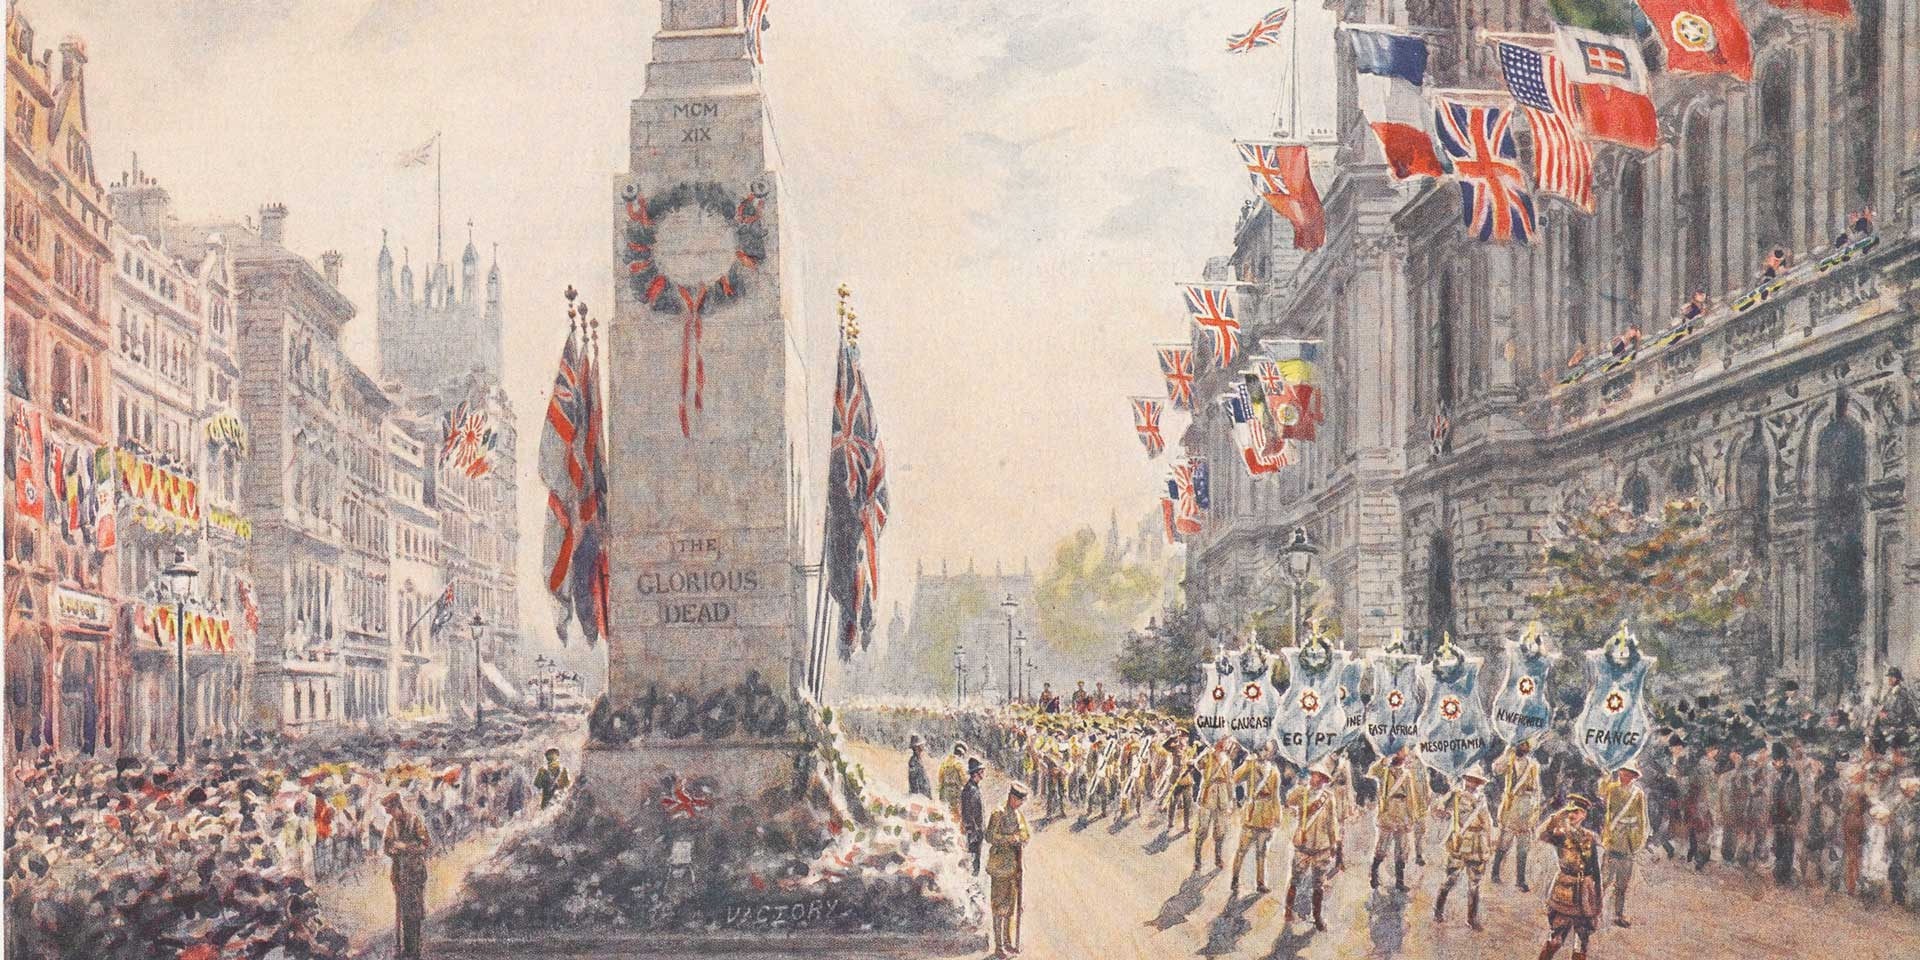 The Cenotaph in Whitehall, 1919